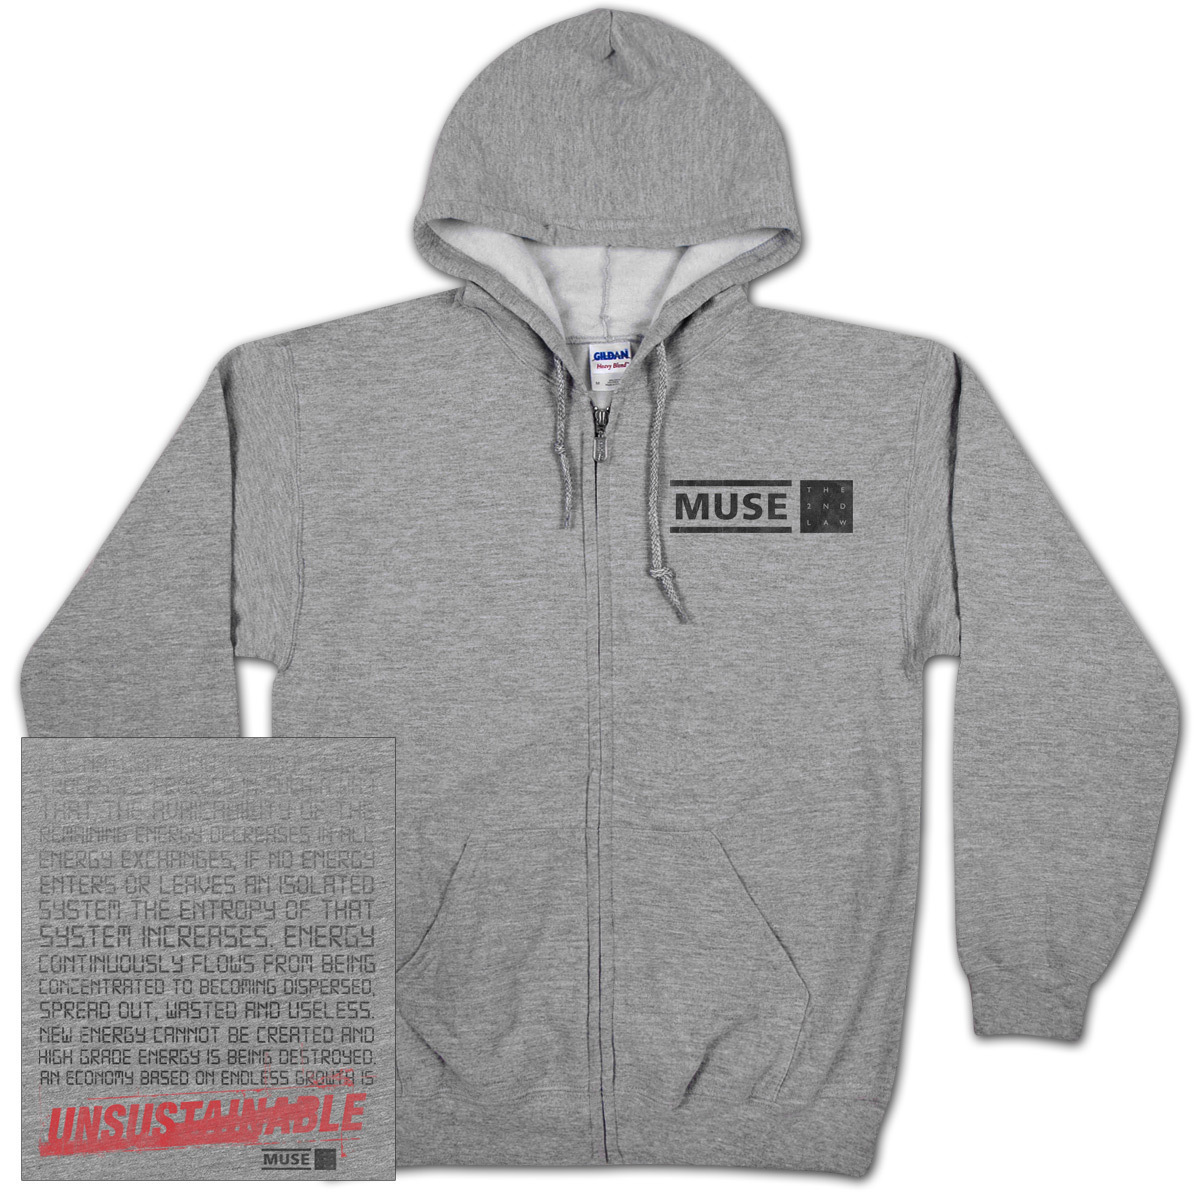 Muse Unsustainable Zip Hoodie